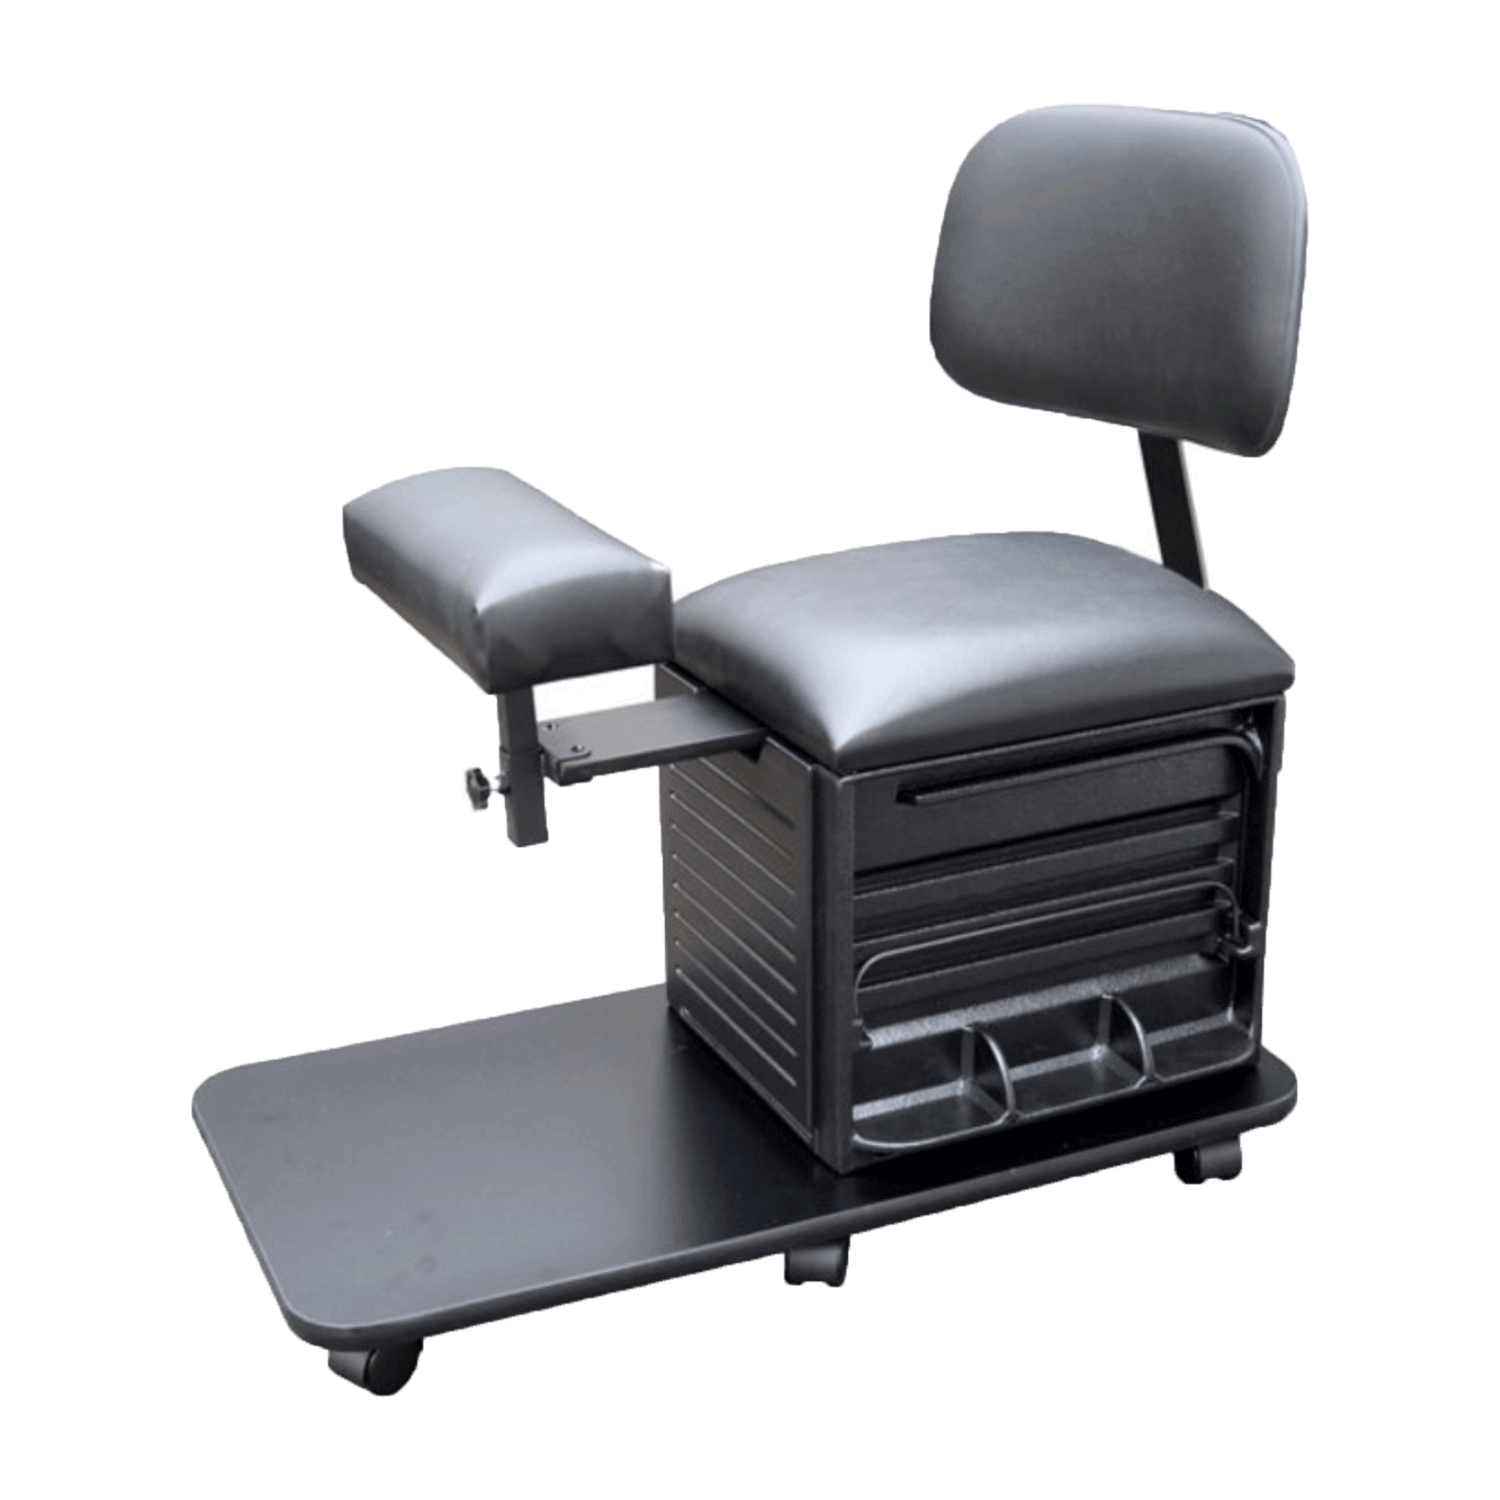 Pedi Board Pedicure Stool with Back Support  sc 1 st  Sally Beauty & Pedicure Equipment islam-shia.org